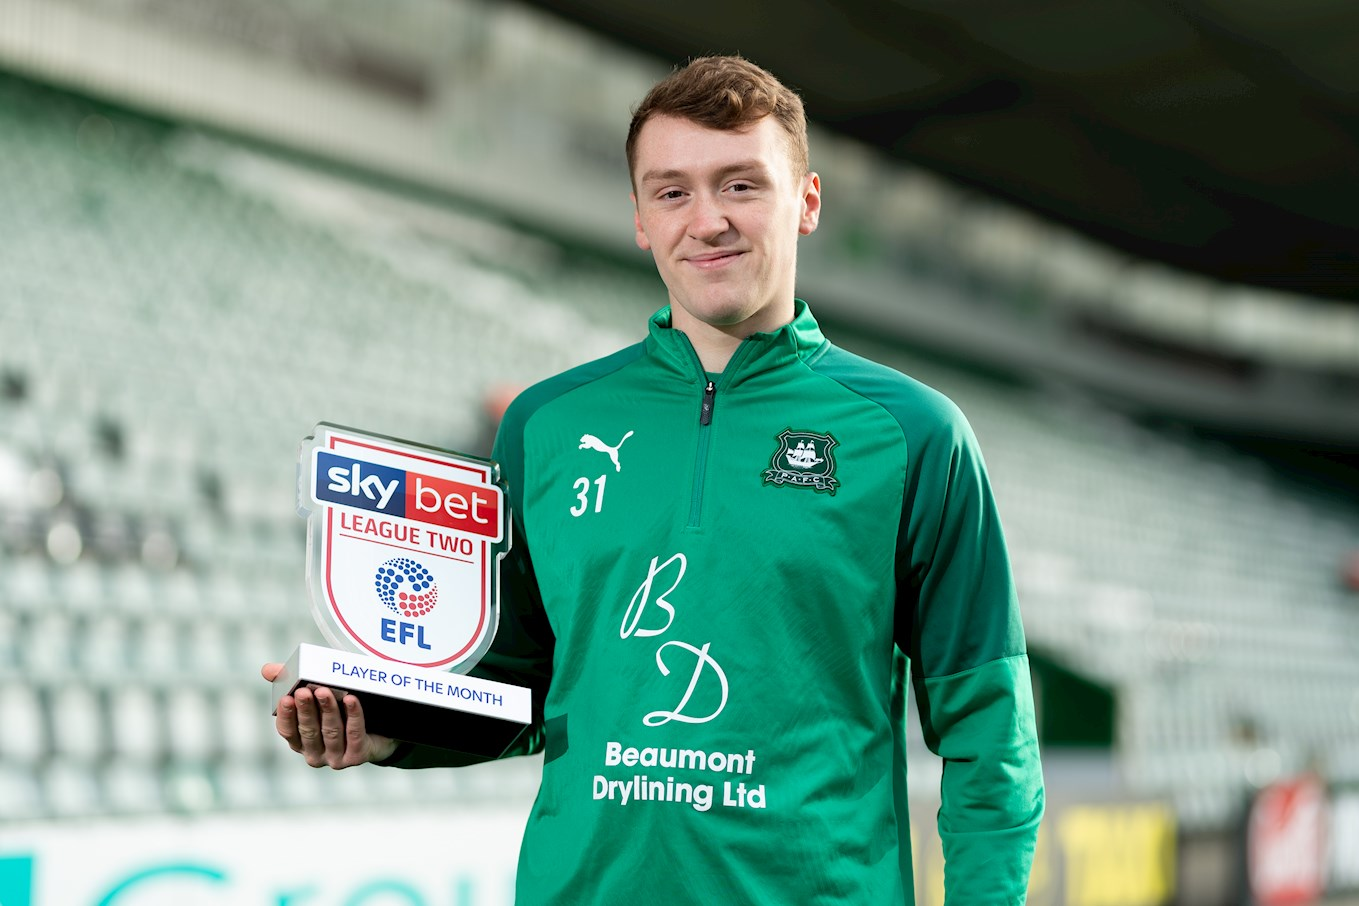 JMP_Sky_Bet_League_Two_January_2020_POTM_MOTM_RH_026A.JPG